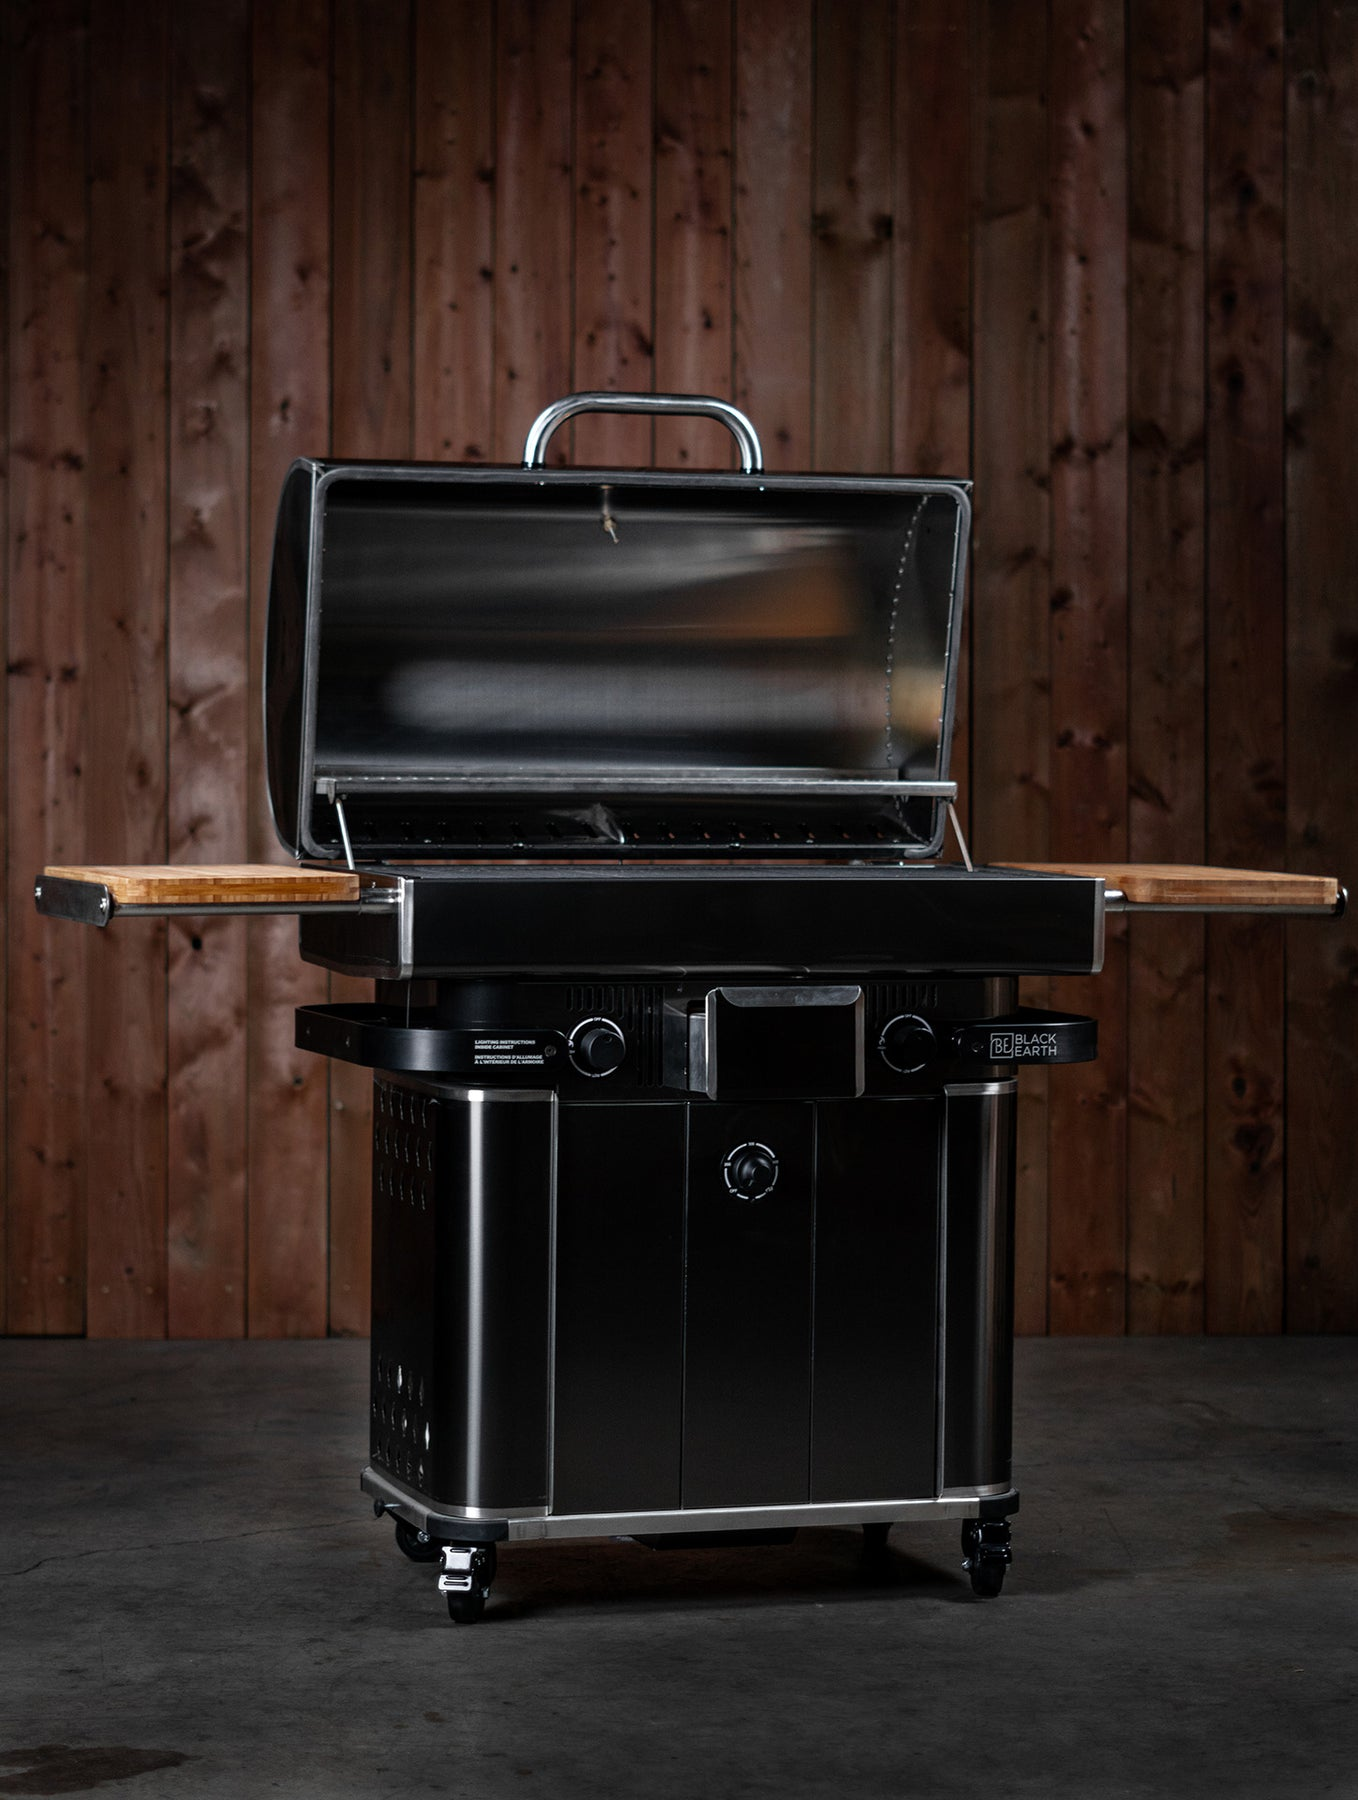 Black Earth Grills Built-in Natural Gas Hybrid Grill Grill Head ONLY